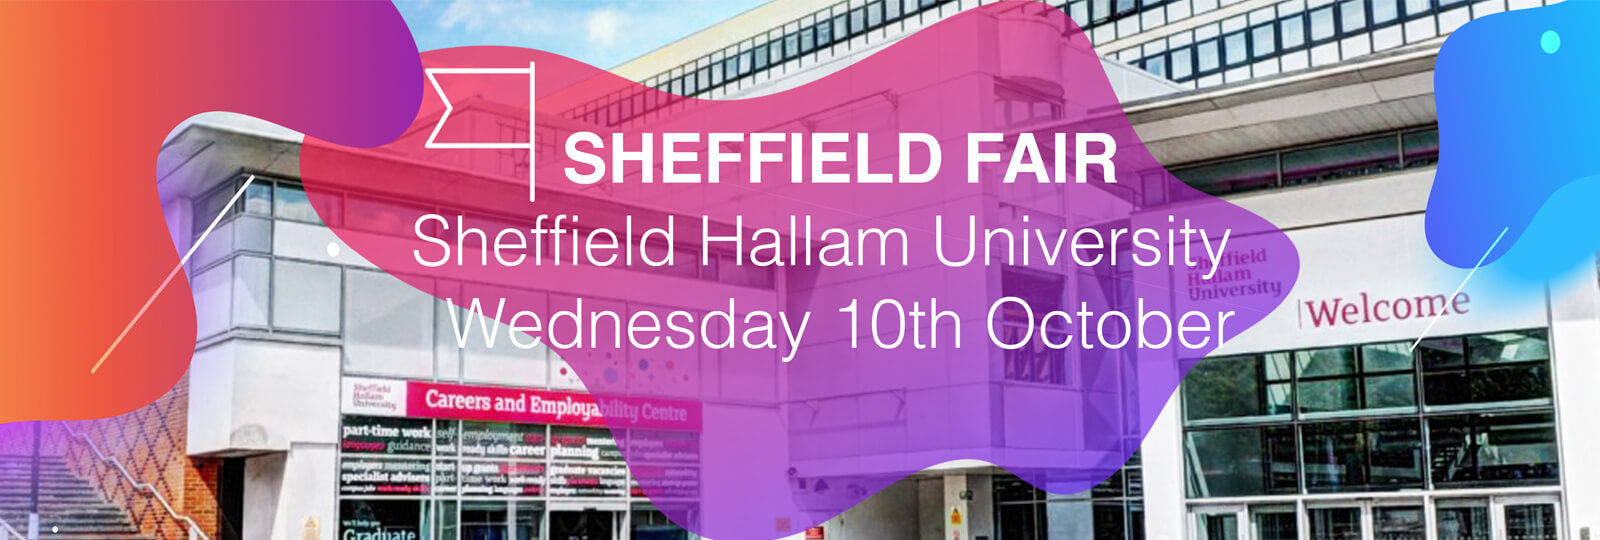 Sheffield Fair